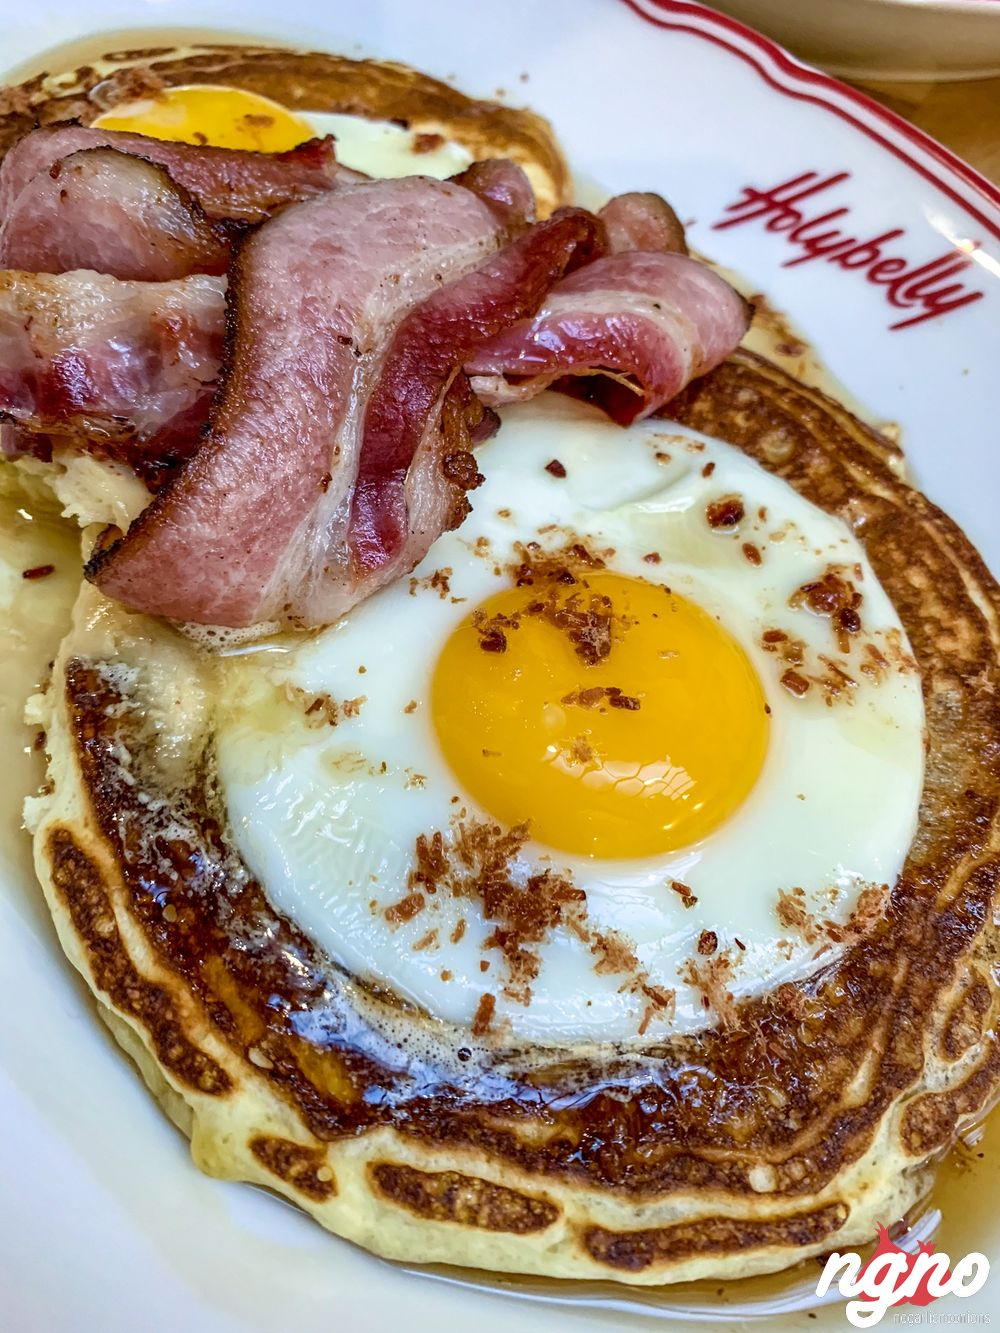 holybelly5-breakfast-paris-nogarlicnoonions-232018-10-13-05-49-33